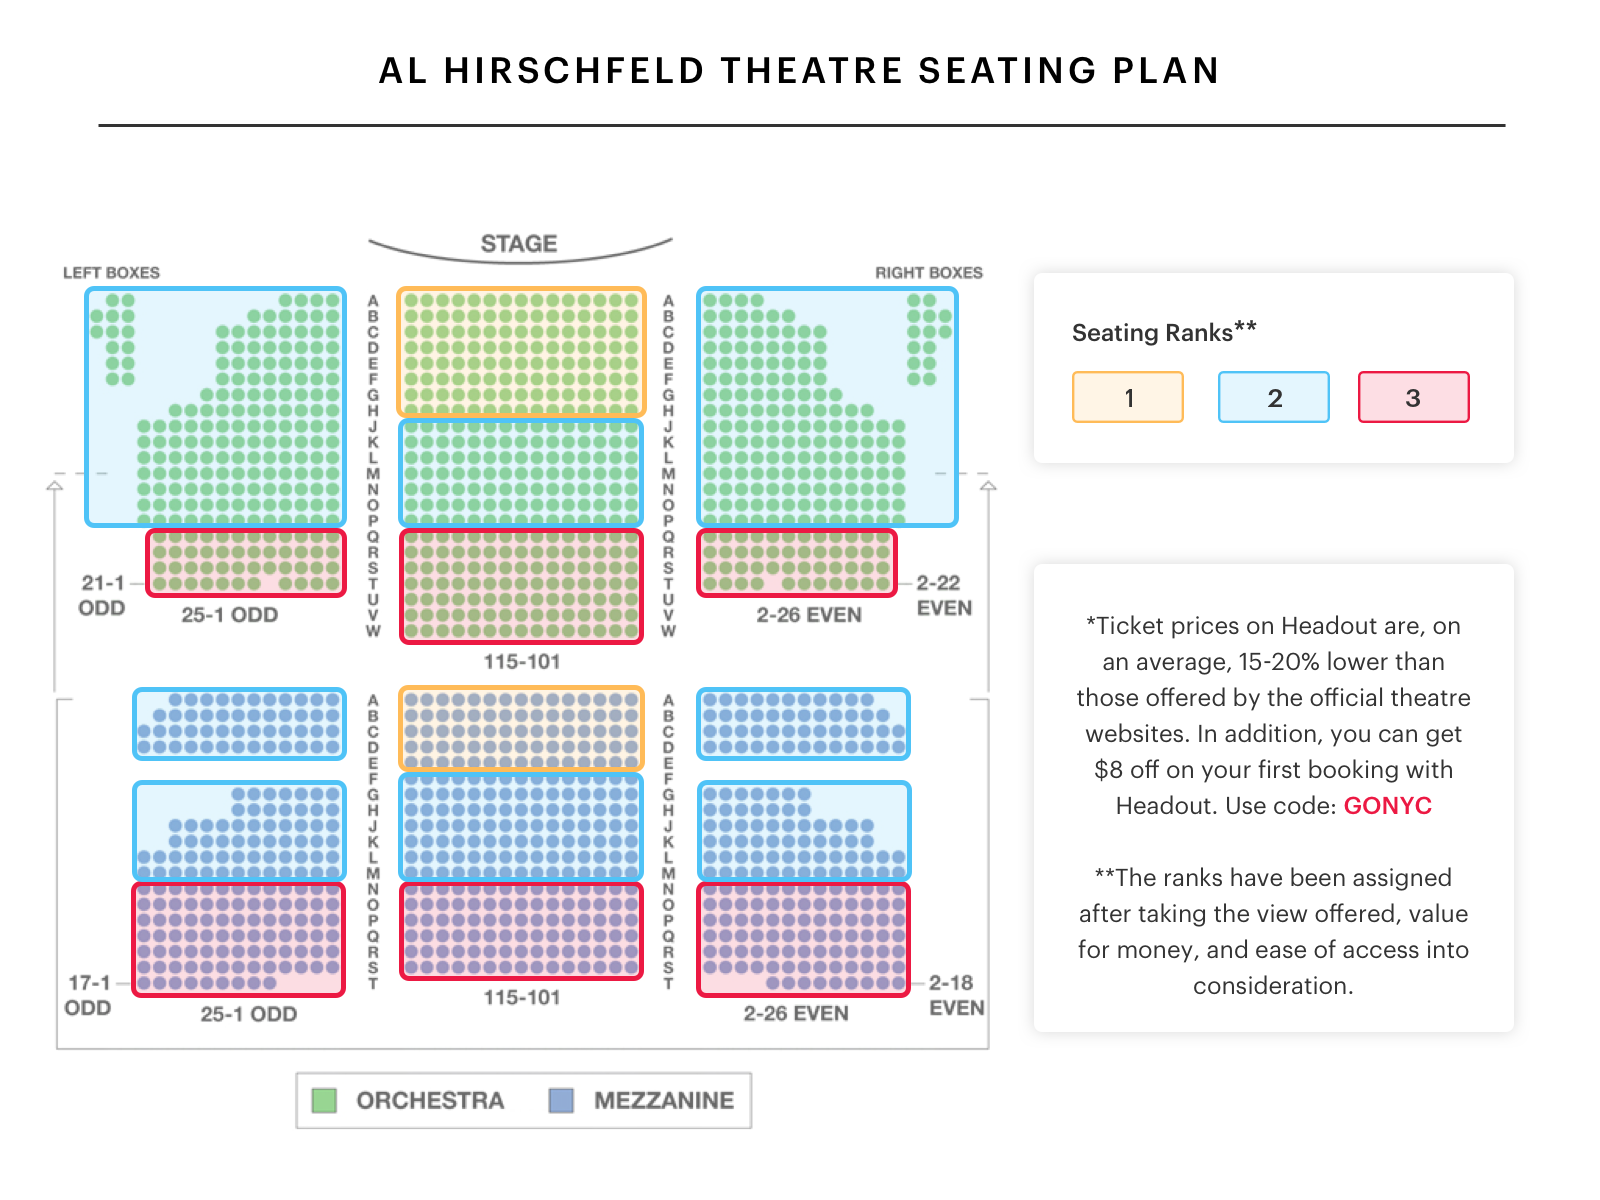 Al hirschfeld theatre seating chart best seats pro tips and more